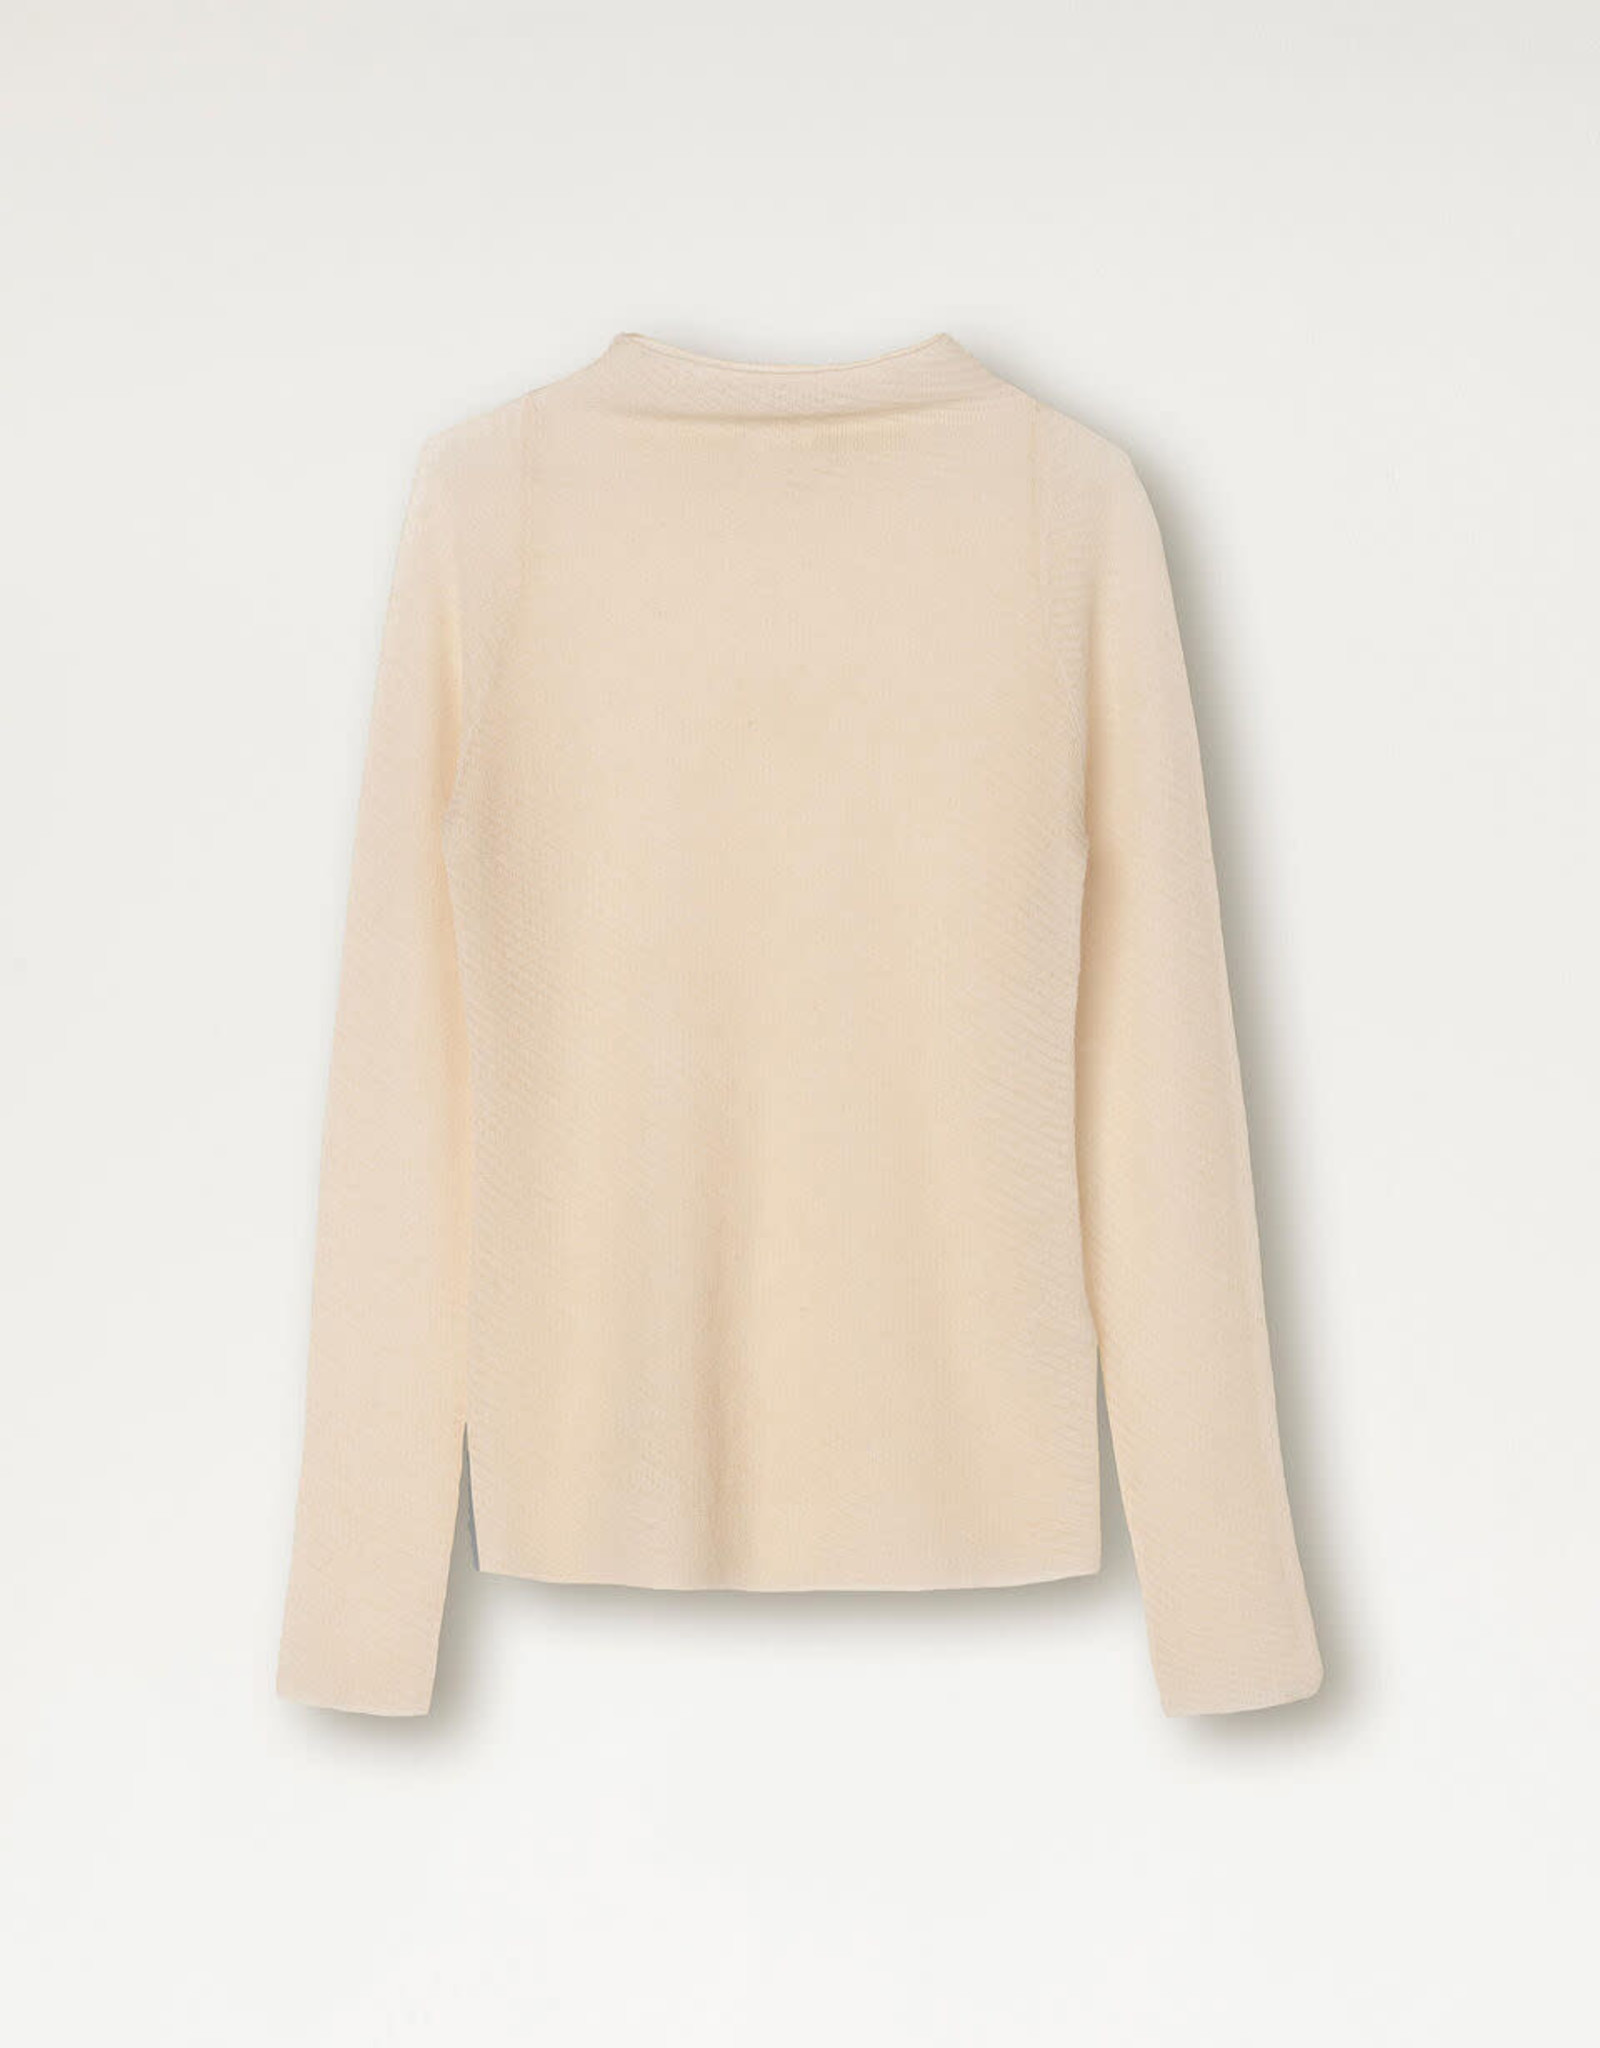 BY MALENE BIRGER The Mimosa Sweater